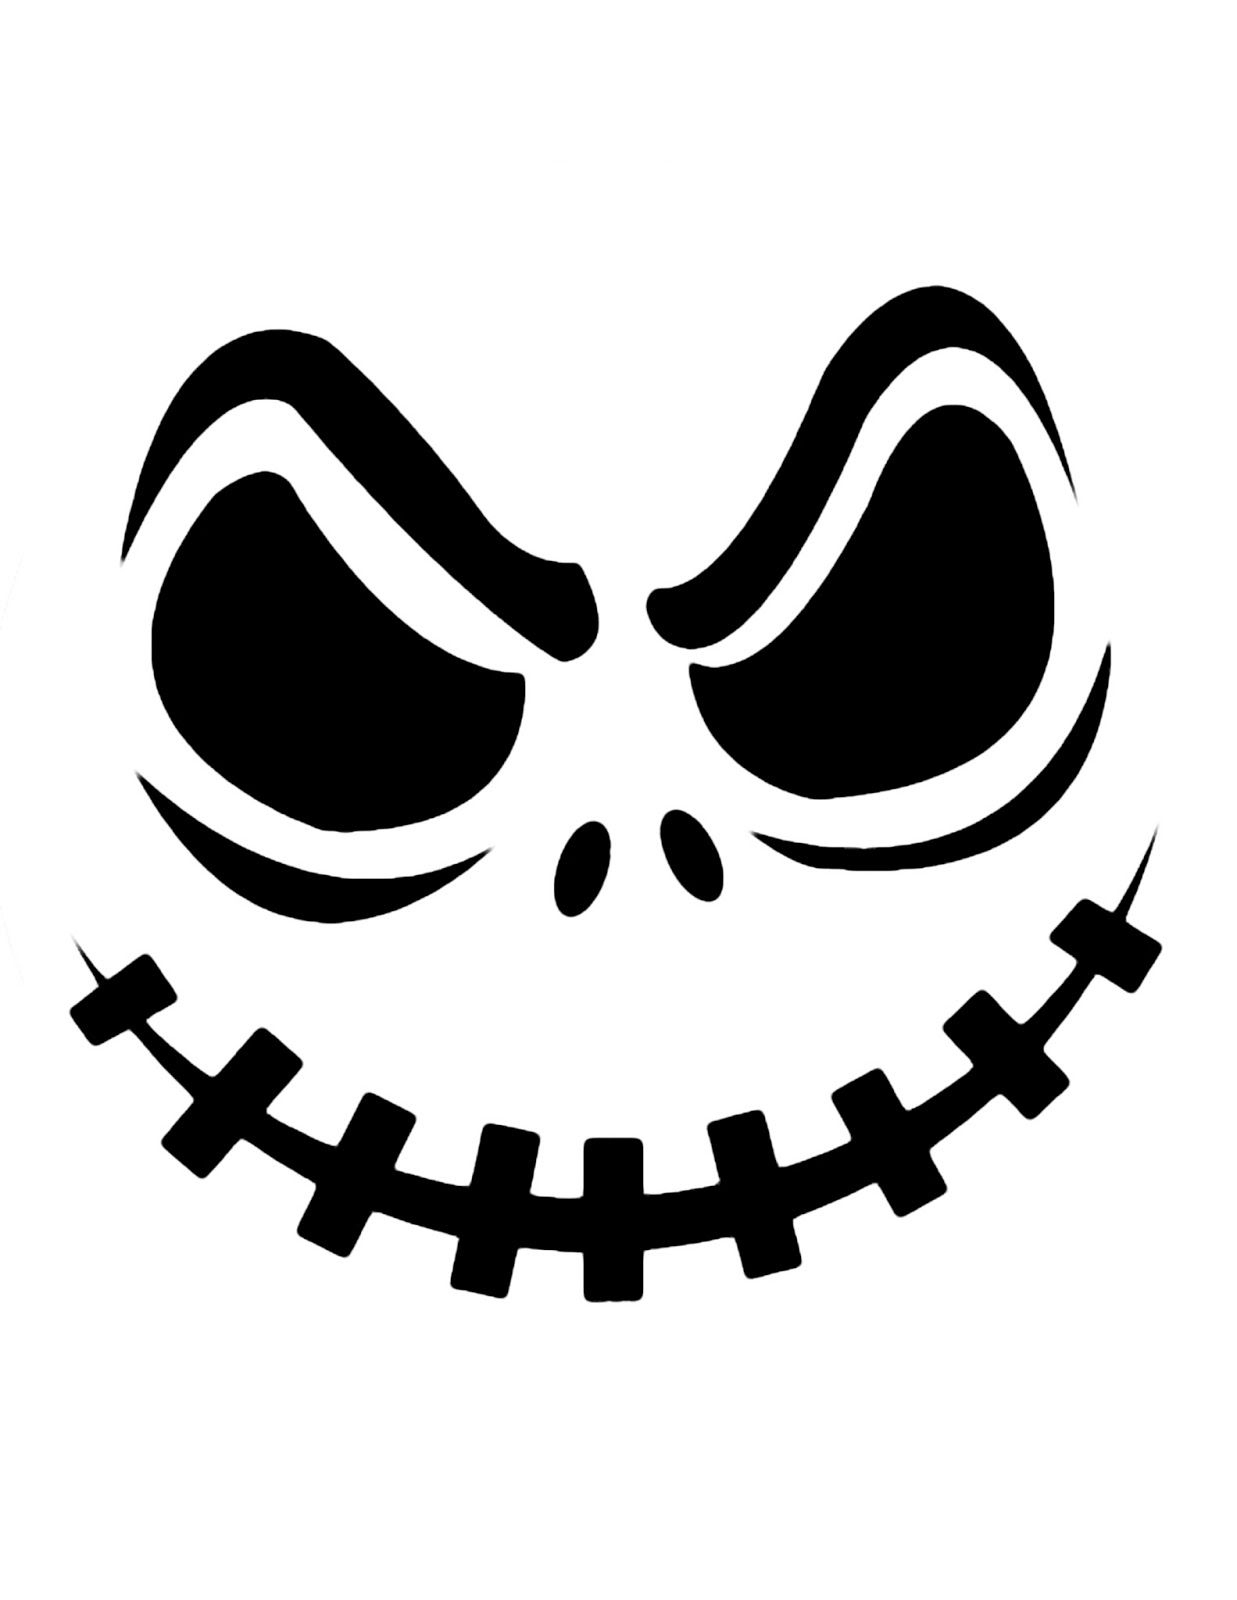 Top Printable Scary Face Pumpkin Carving Pattern Design Stencils - Printable Nfl Pumpkin Carving Patterns Free